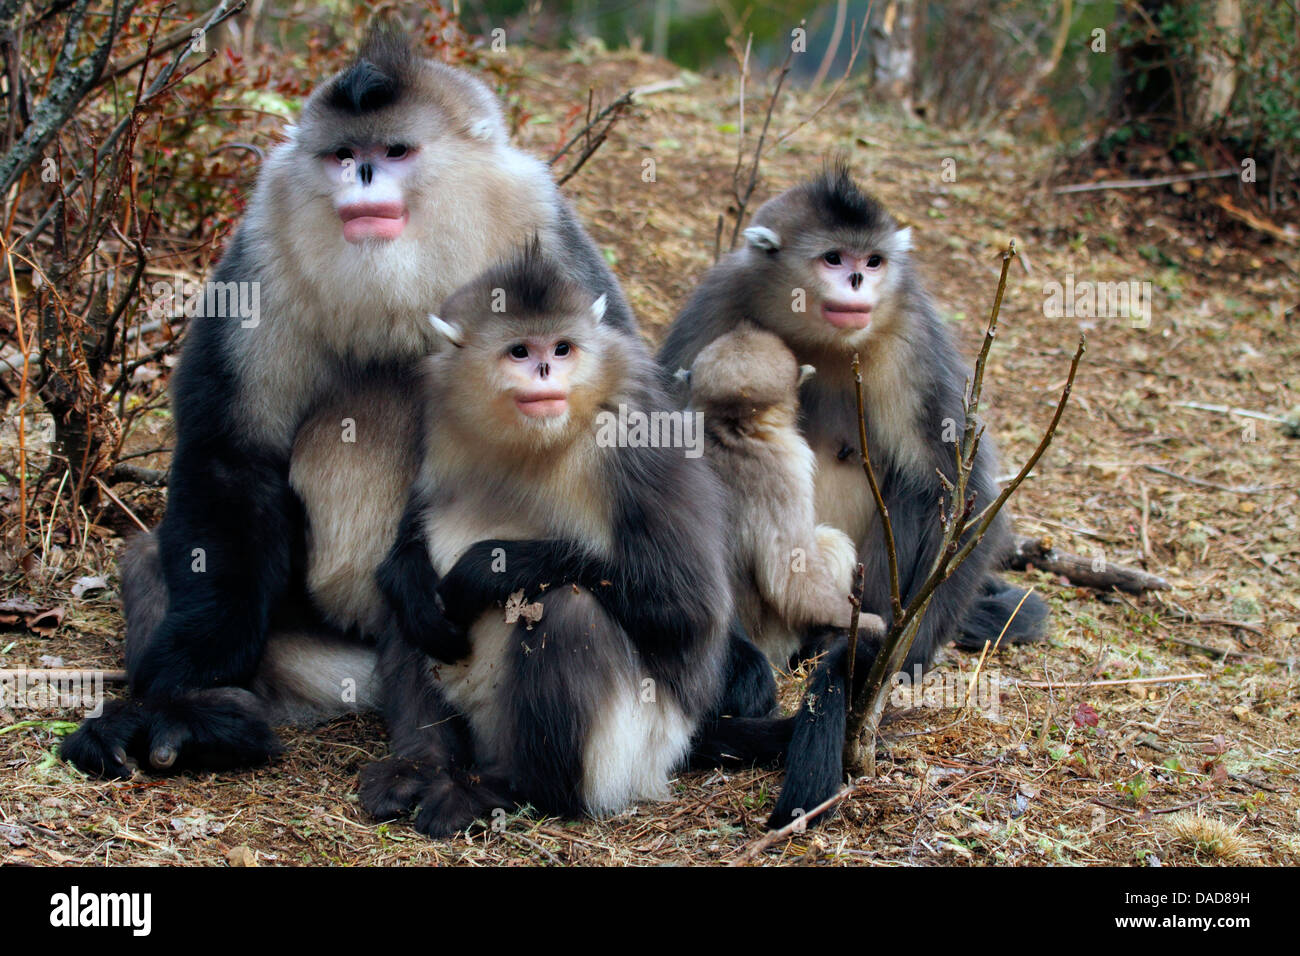 Black snub-nosed monkey, Yunnan snub-nosed monkey (Rhinopithecus bieti), family gathering, China, Yunnan, Baima Stock Photo